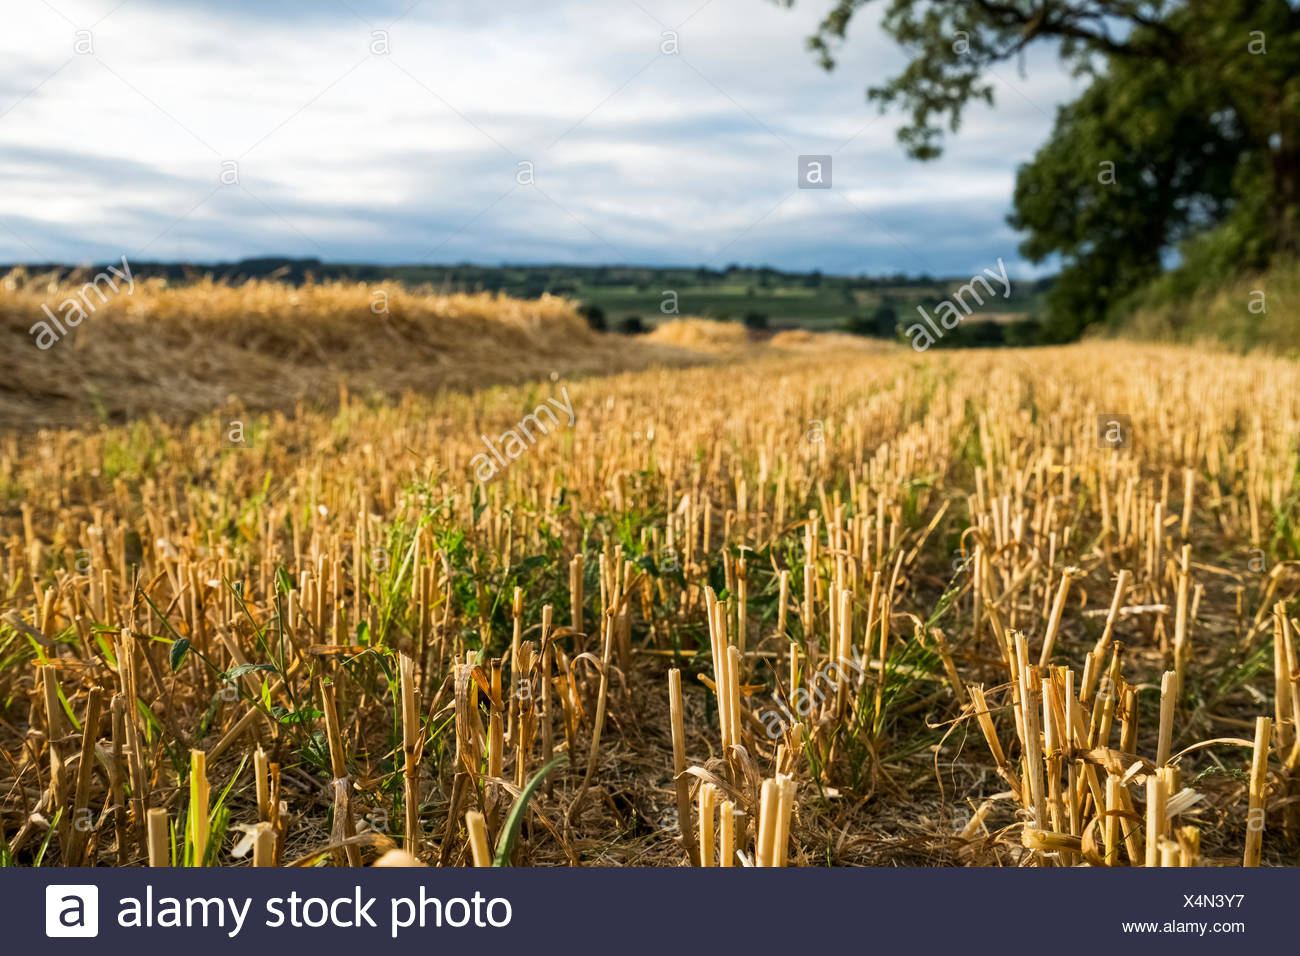 Crop stubble in a field under a cloudy sky; Ravensworth, North Yorkshire, England - Stock Image